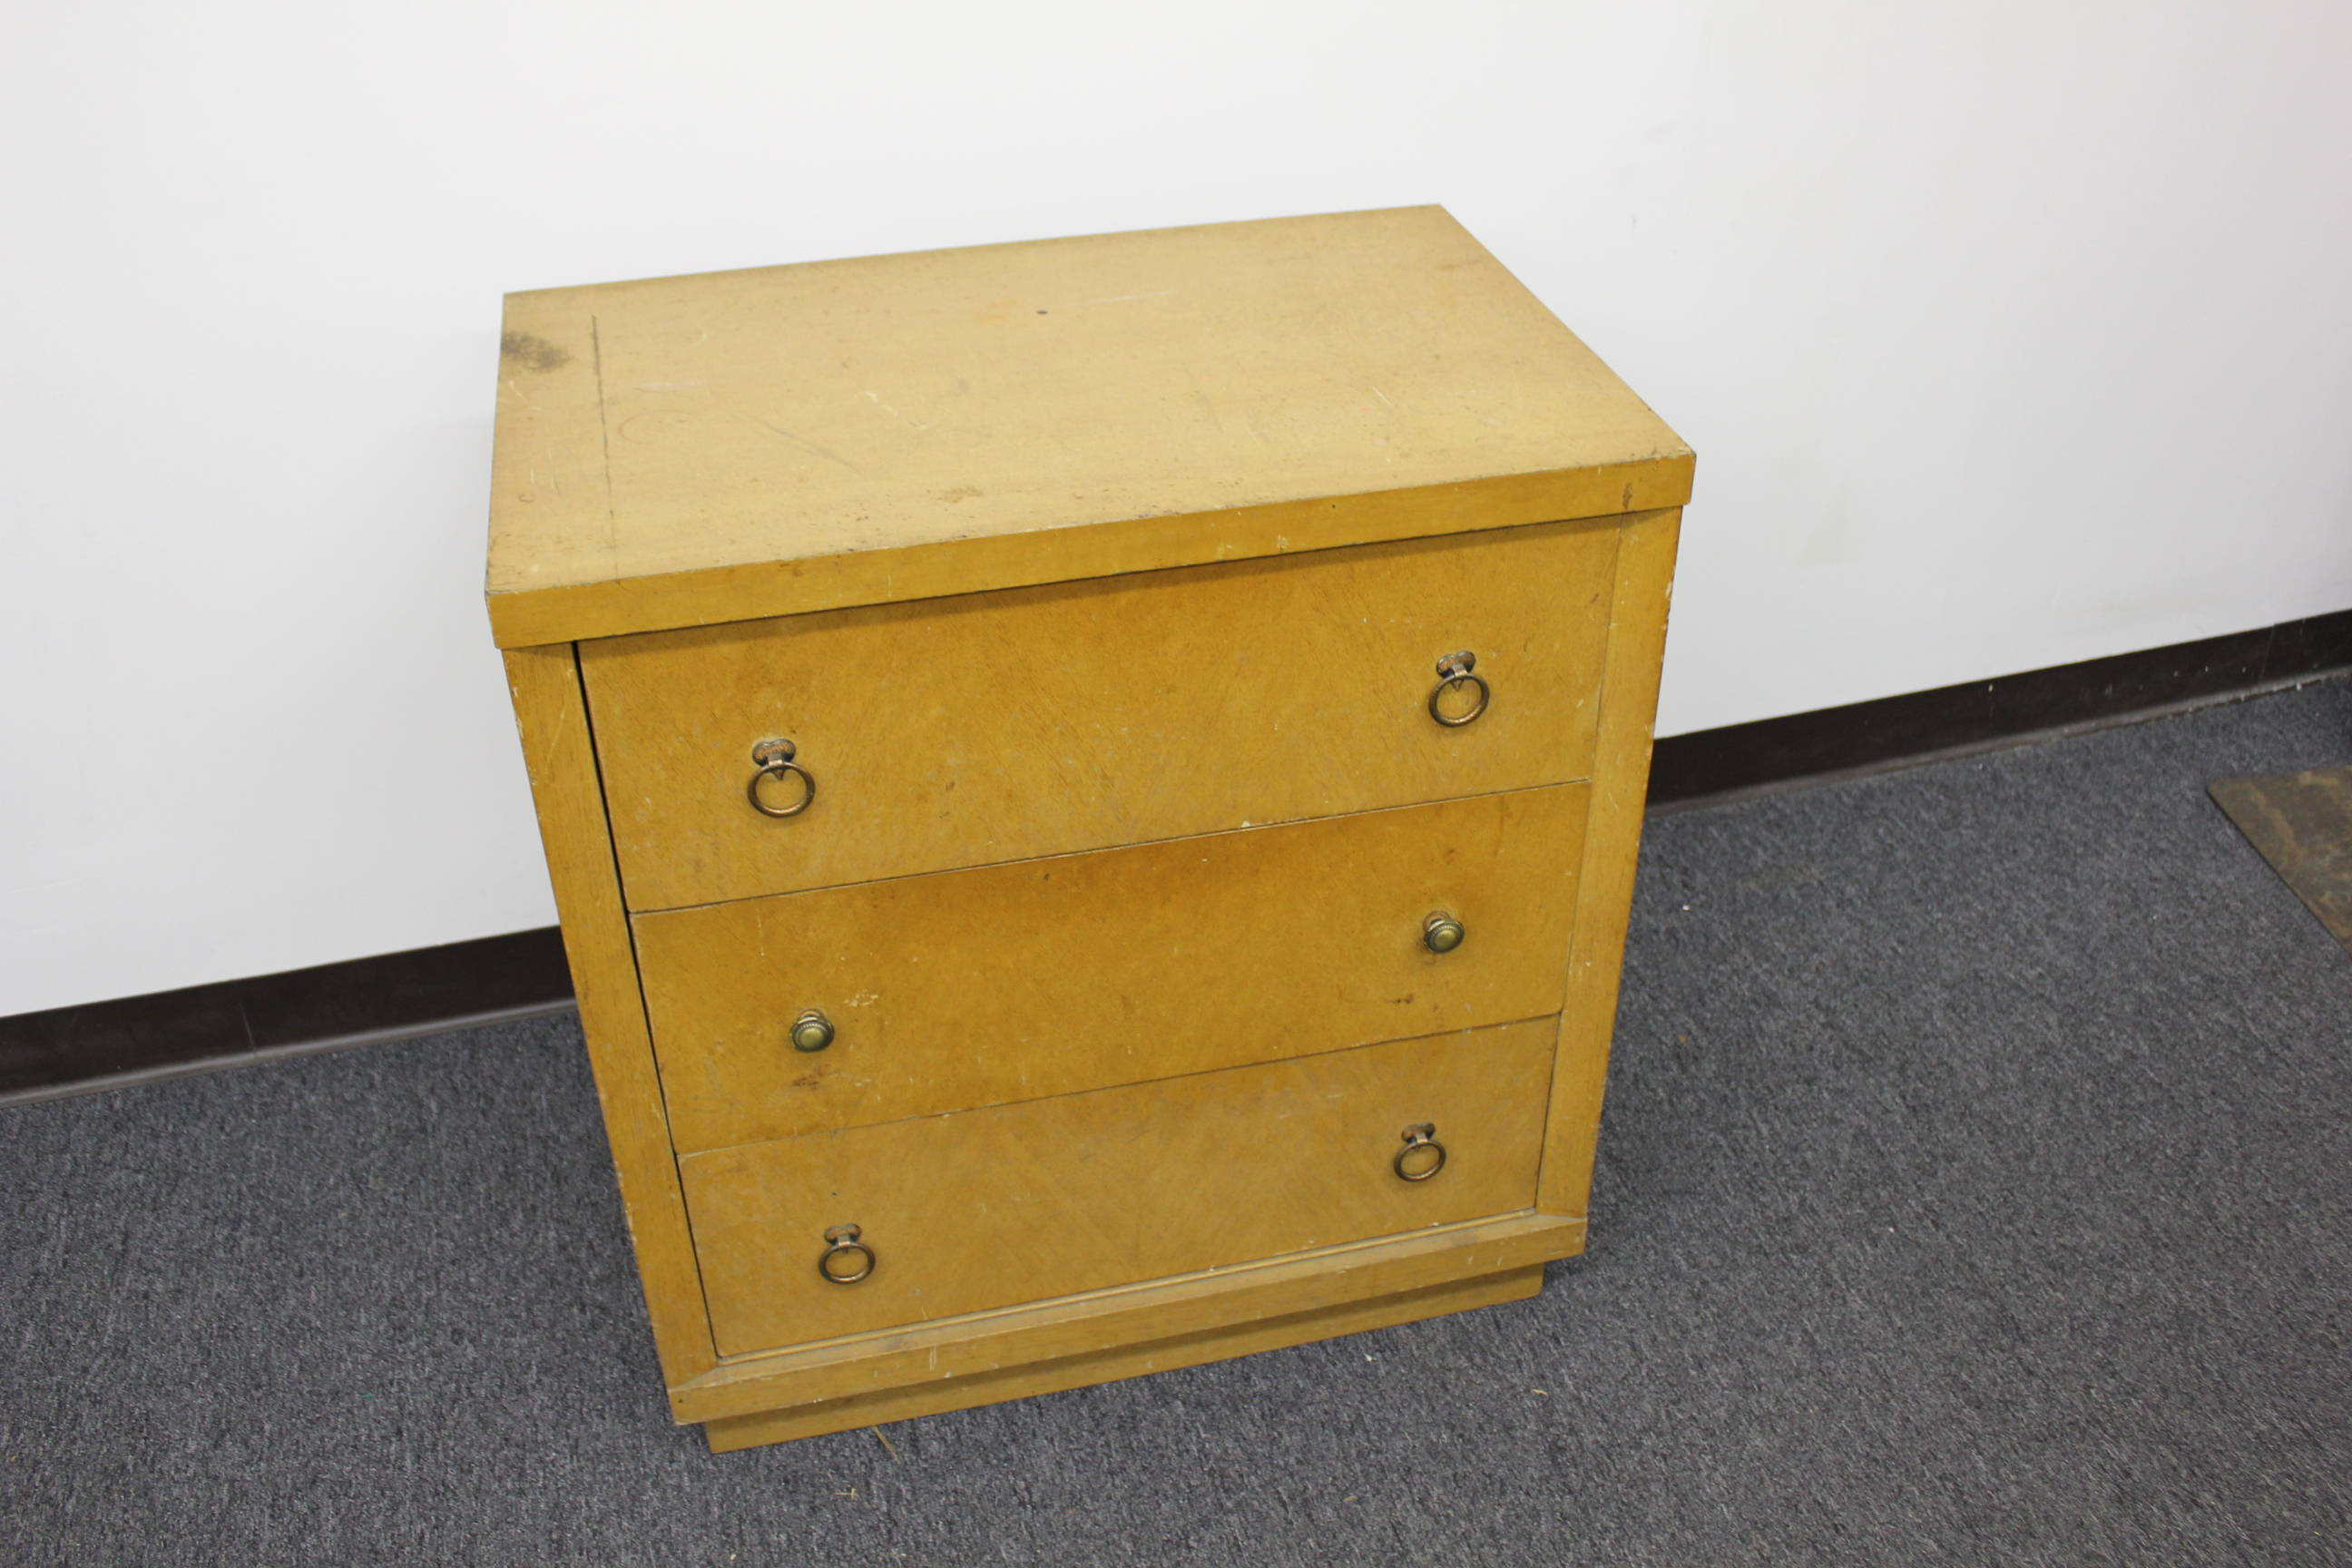 five sale hand dark of tall cheap drawers bedroom makeover dressers by solid baltia narrow chest ikea argos used color brown second before ashley on wooden chestofdrawers white leahlyn drawer craigslist wood for dresser